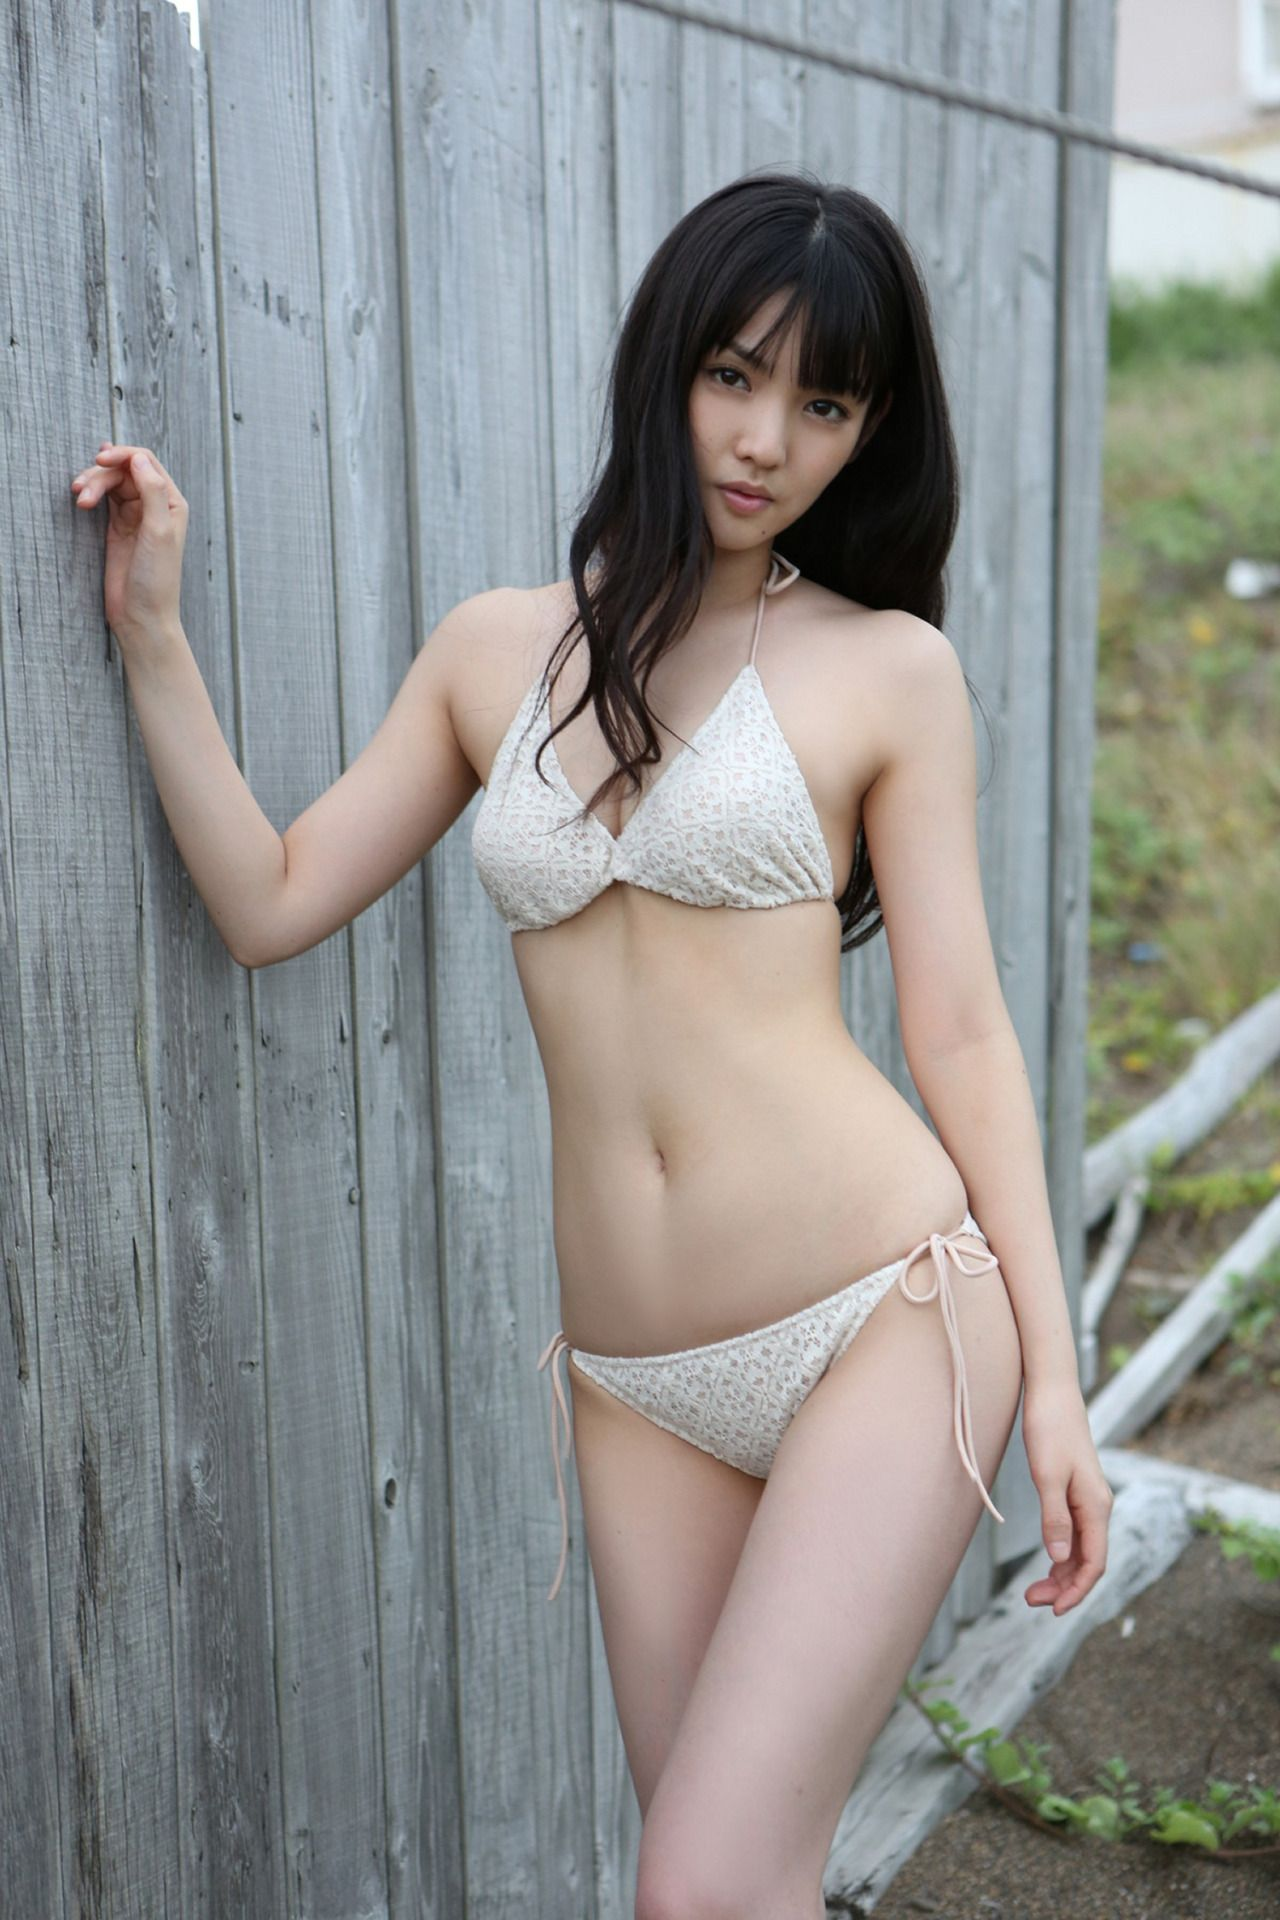 Sayumi Michisigue | saki san | Pinterest